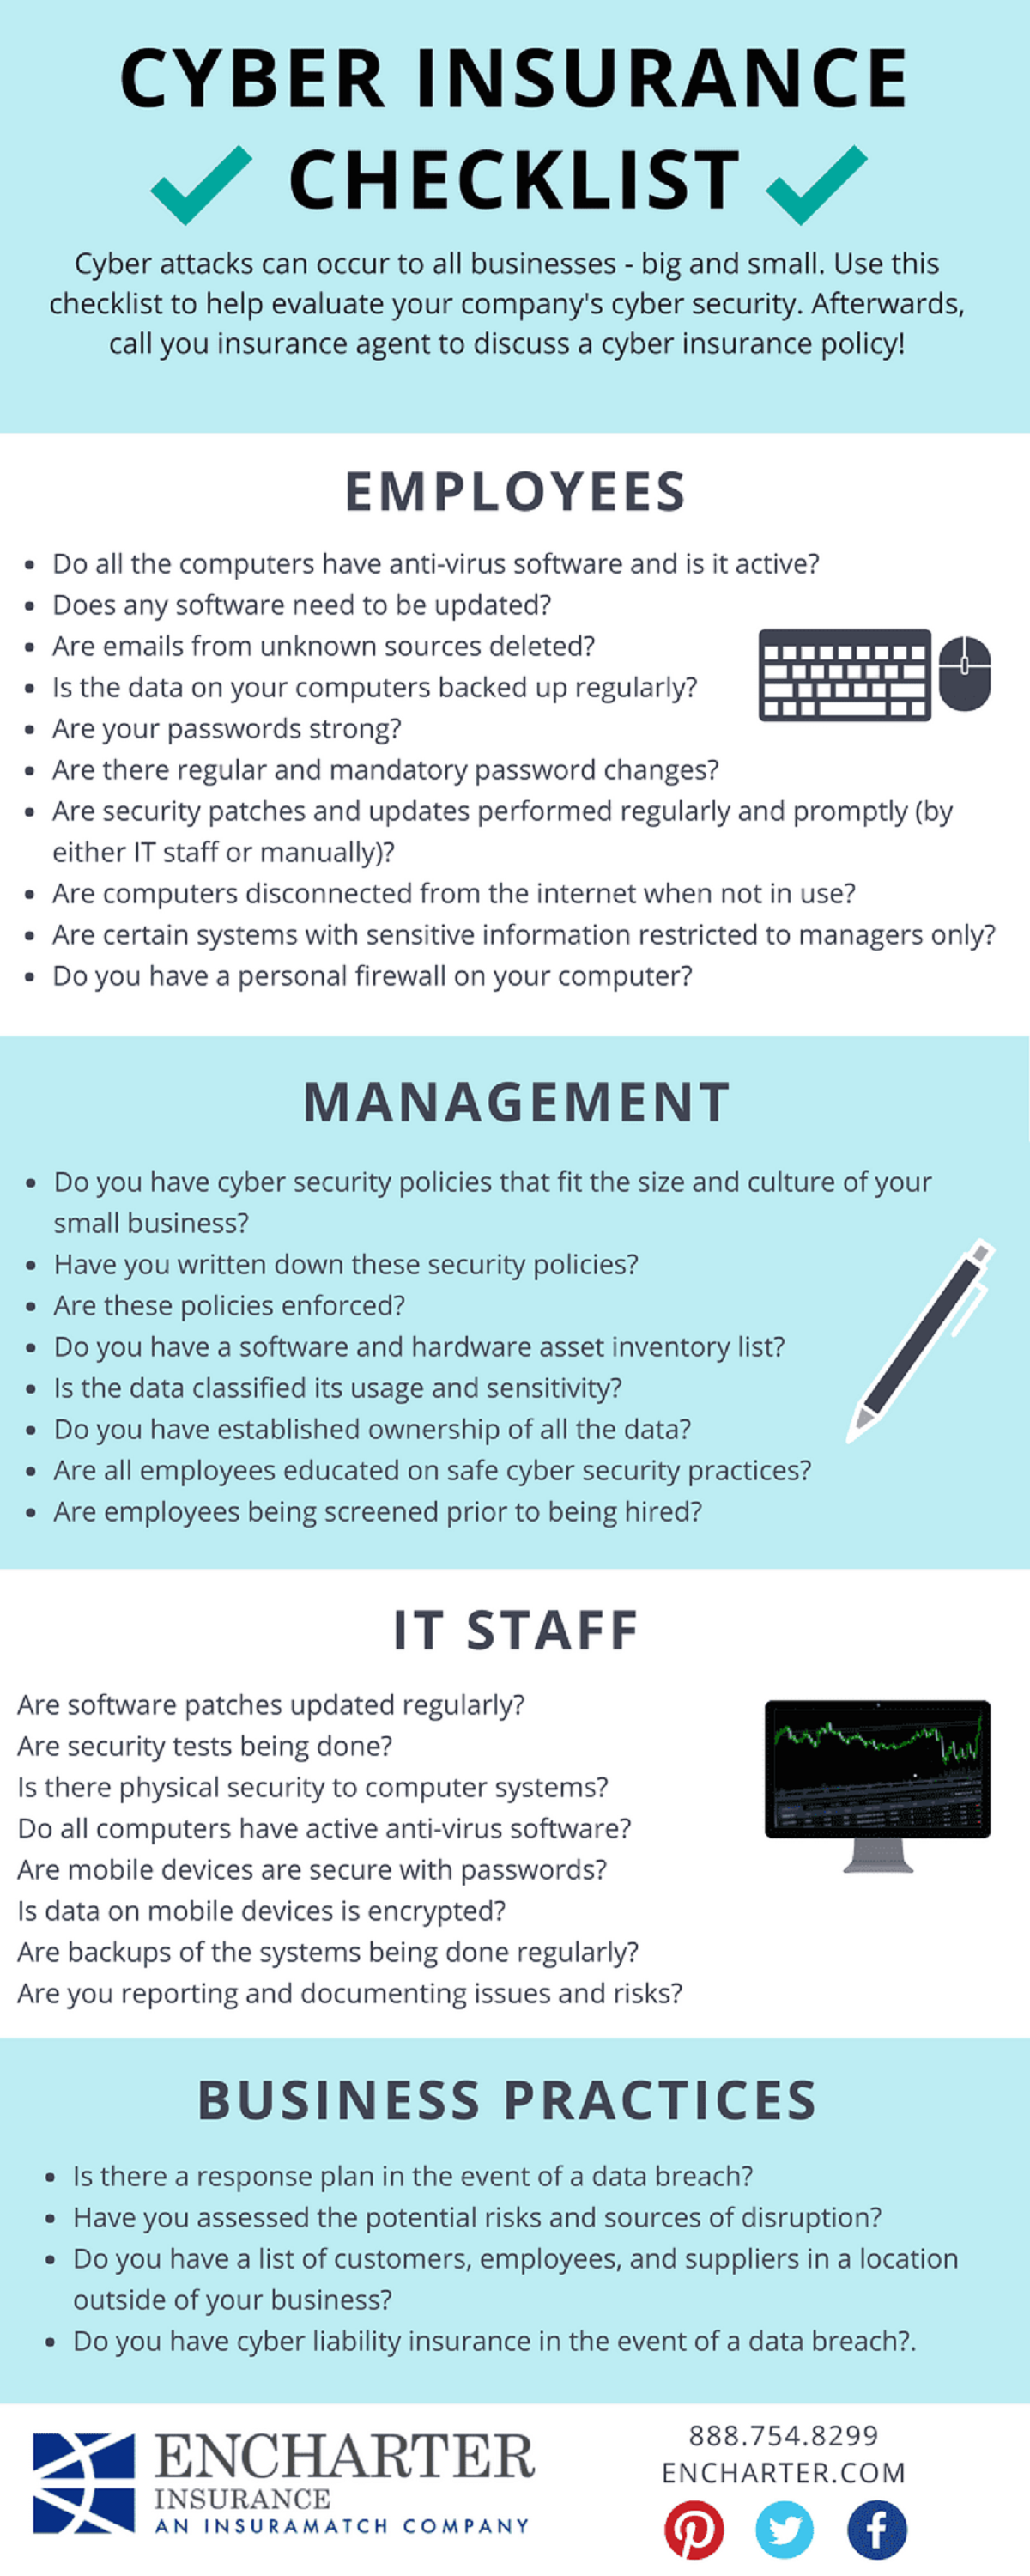 cyber-insurance-infographic-checklist-infographic